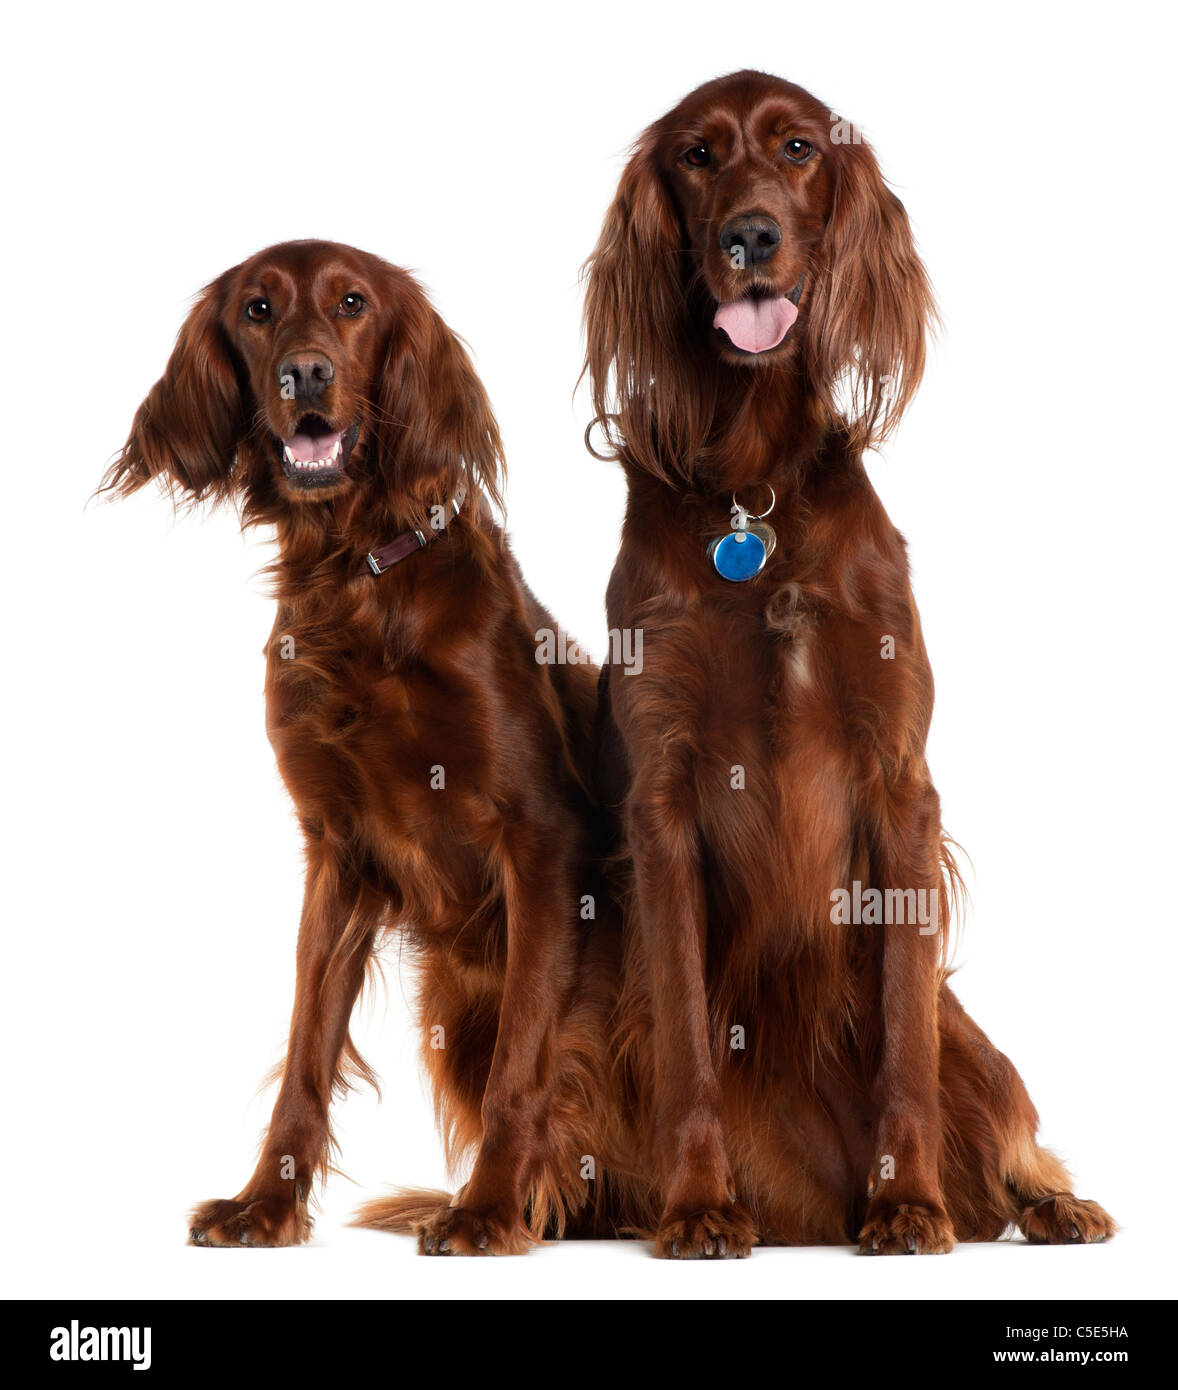 Two Irish Setters sitting in front of white background - Stock Image